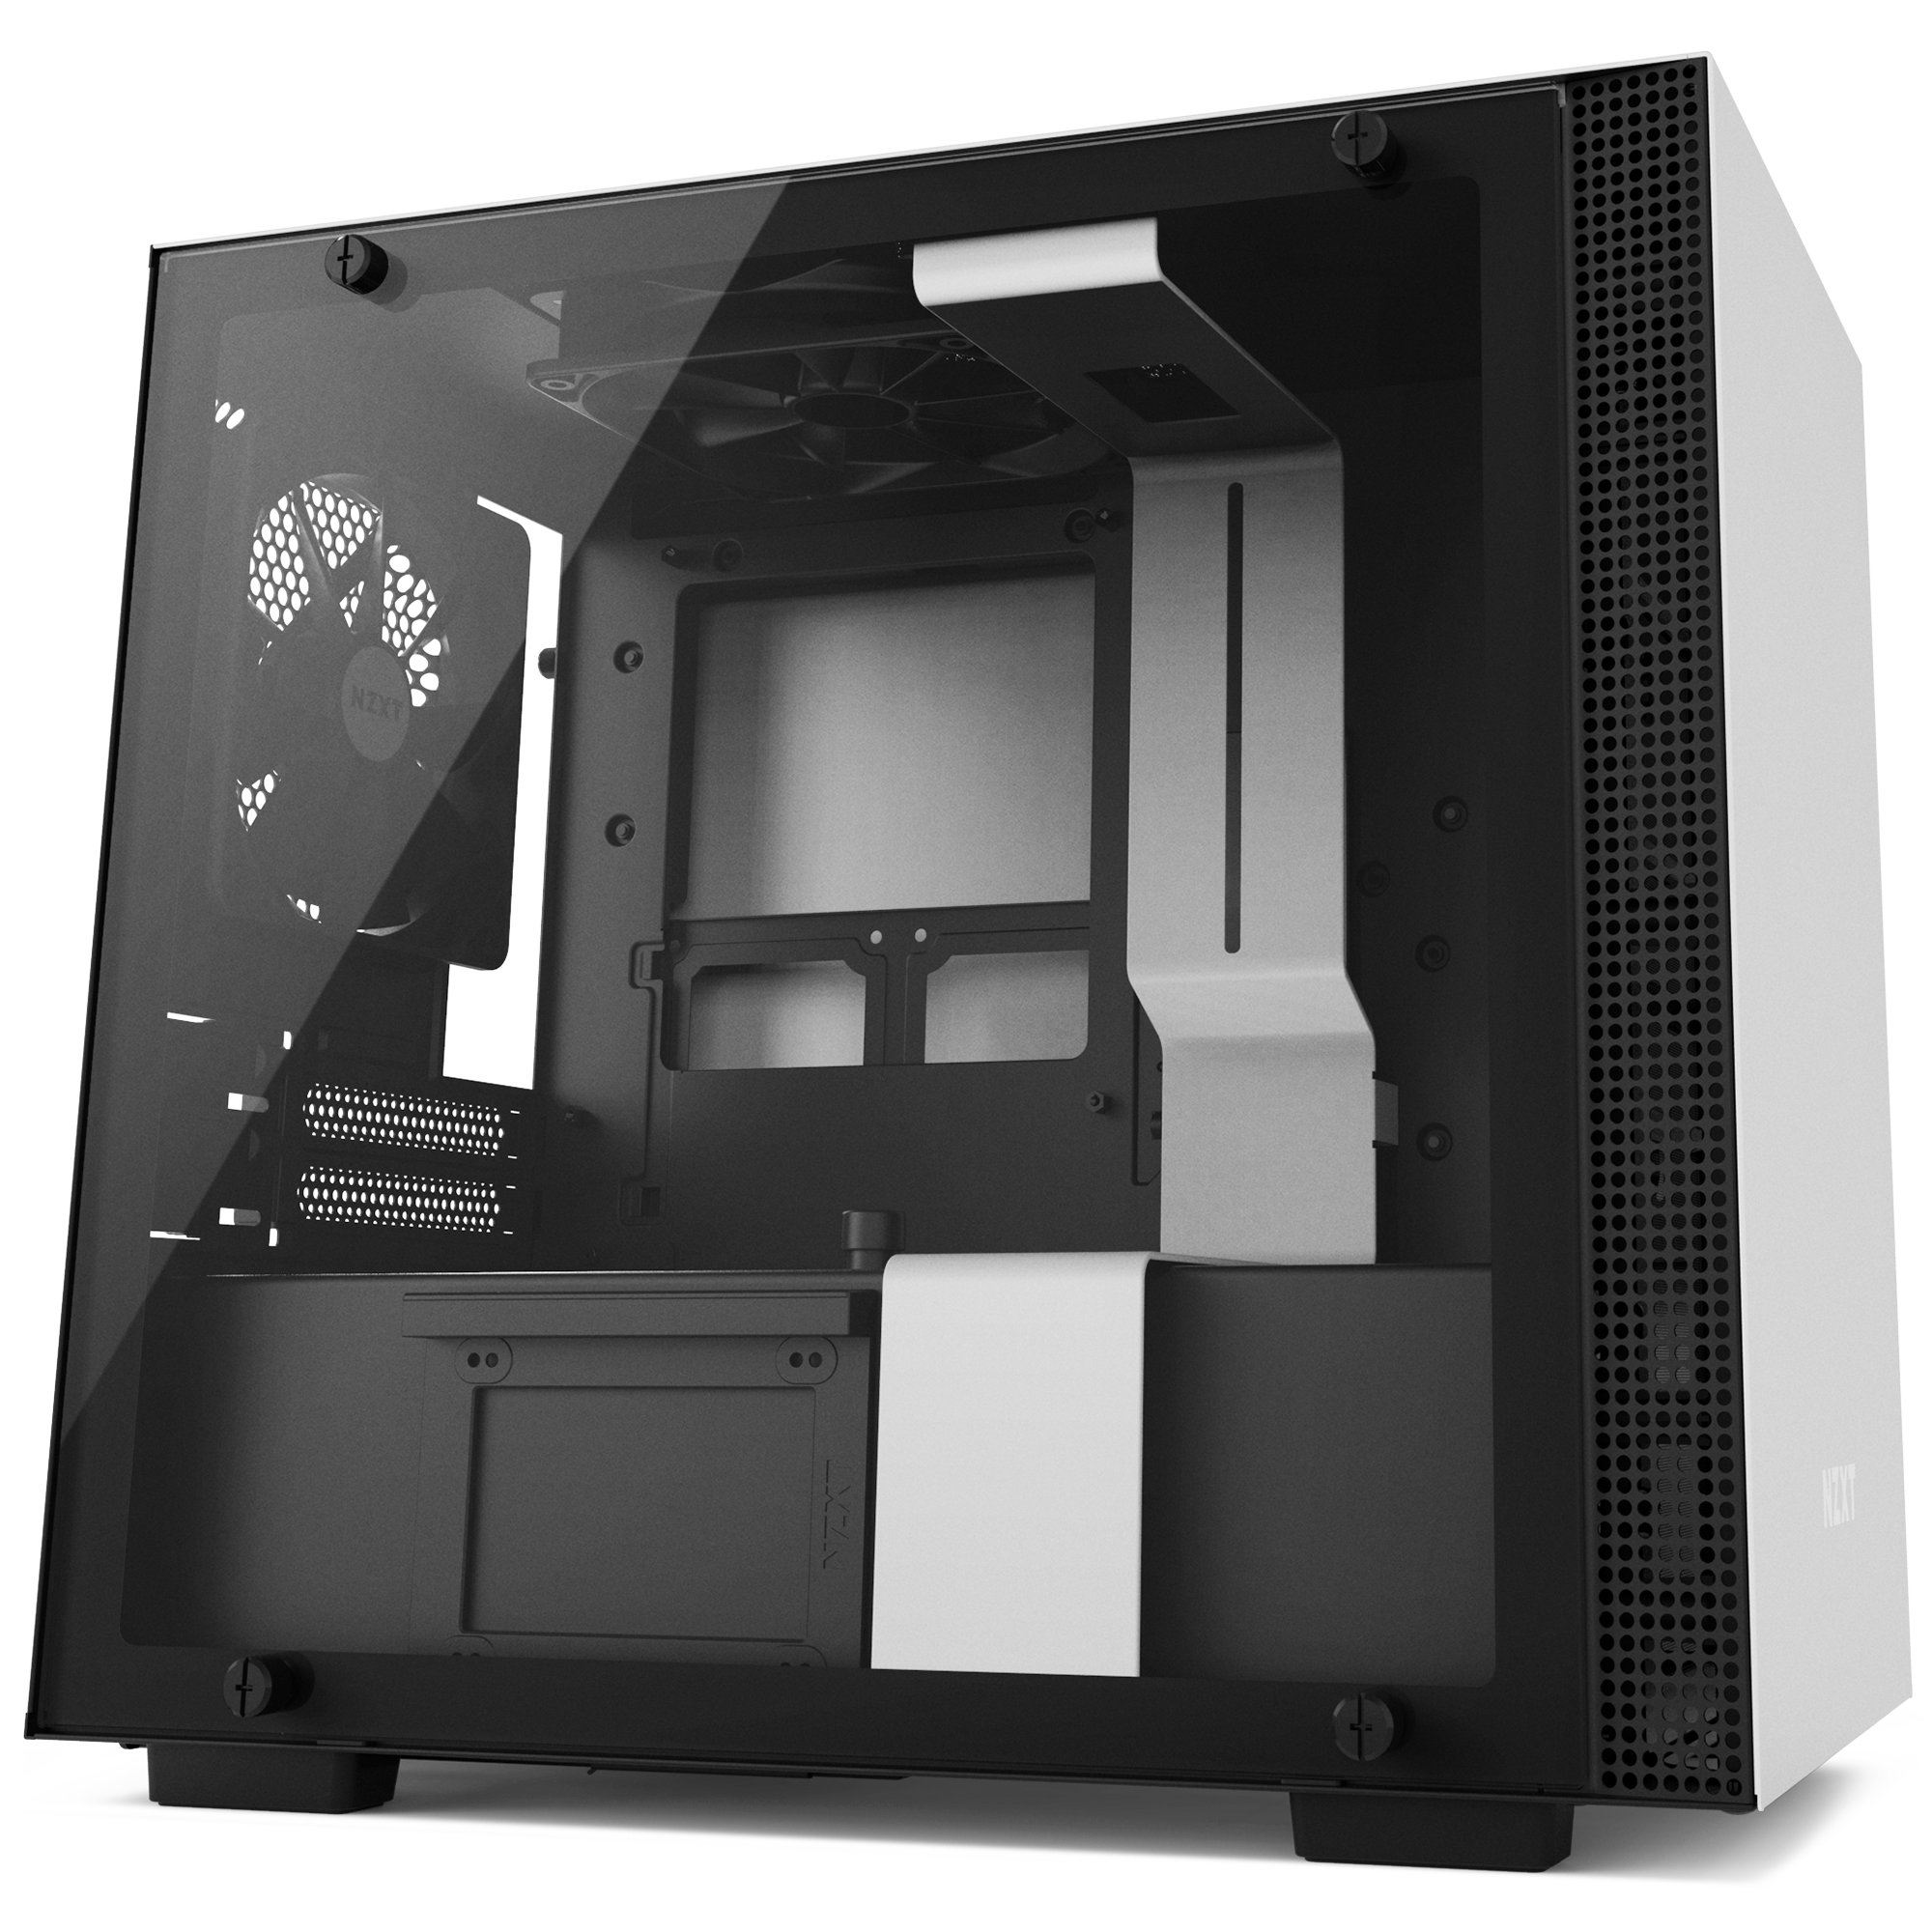 NZXT H200 - Mini-ITX PC Gaming Case - Tempered Glass Panel -Enhanced Cable Management System - Water Cooling Ready - White/Black - 2018 Model by NZXT